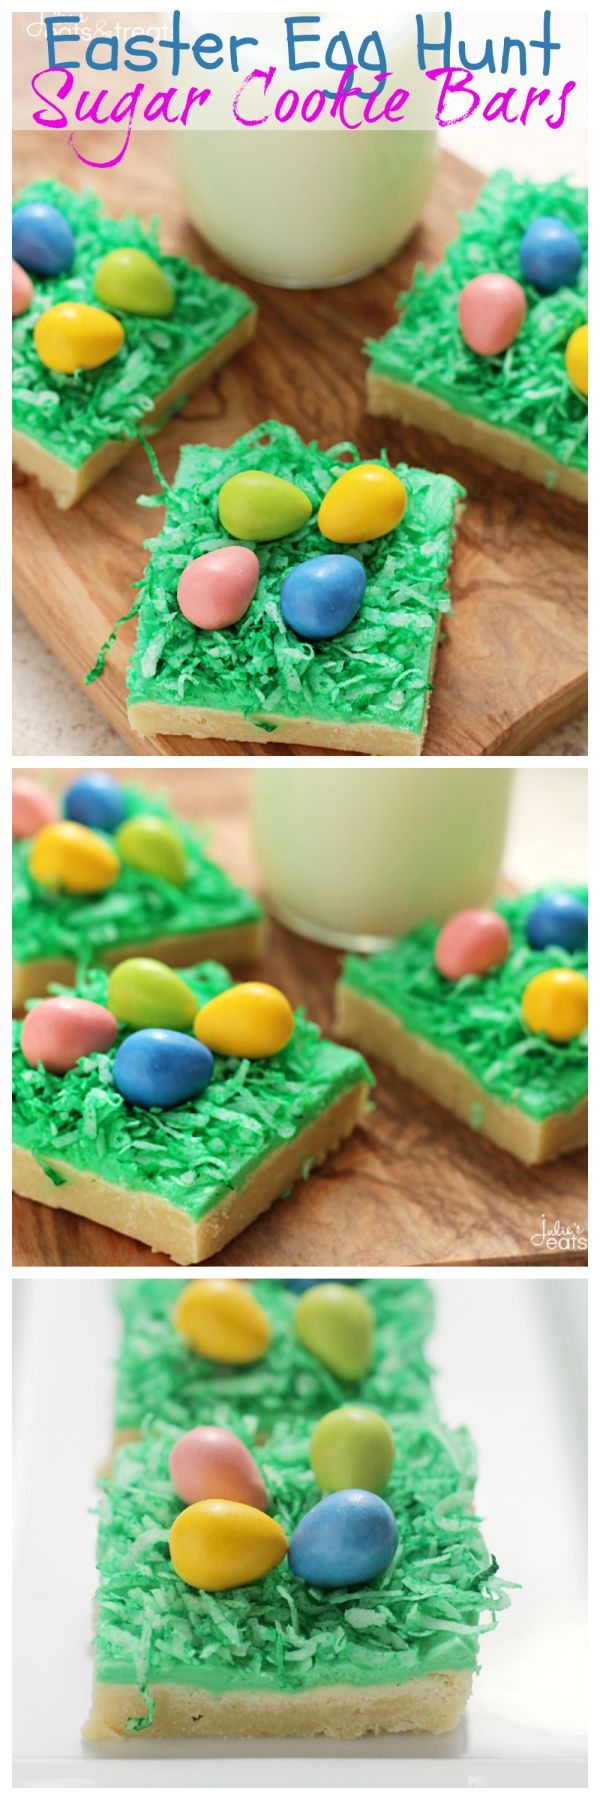 "Easter Egg Hunt Sugar Cookie Bars!!  Soft, Chewy Sugar Cookie Bars topped with Green Coconut ""Grass"" and Candy Easter Eggs!!!  SOOOooooo Cute!! :))"